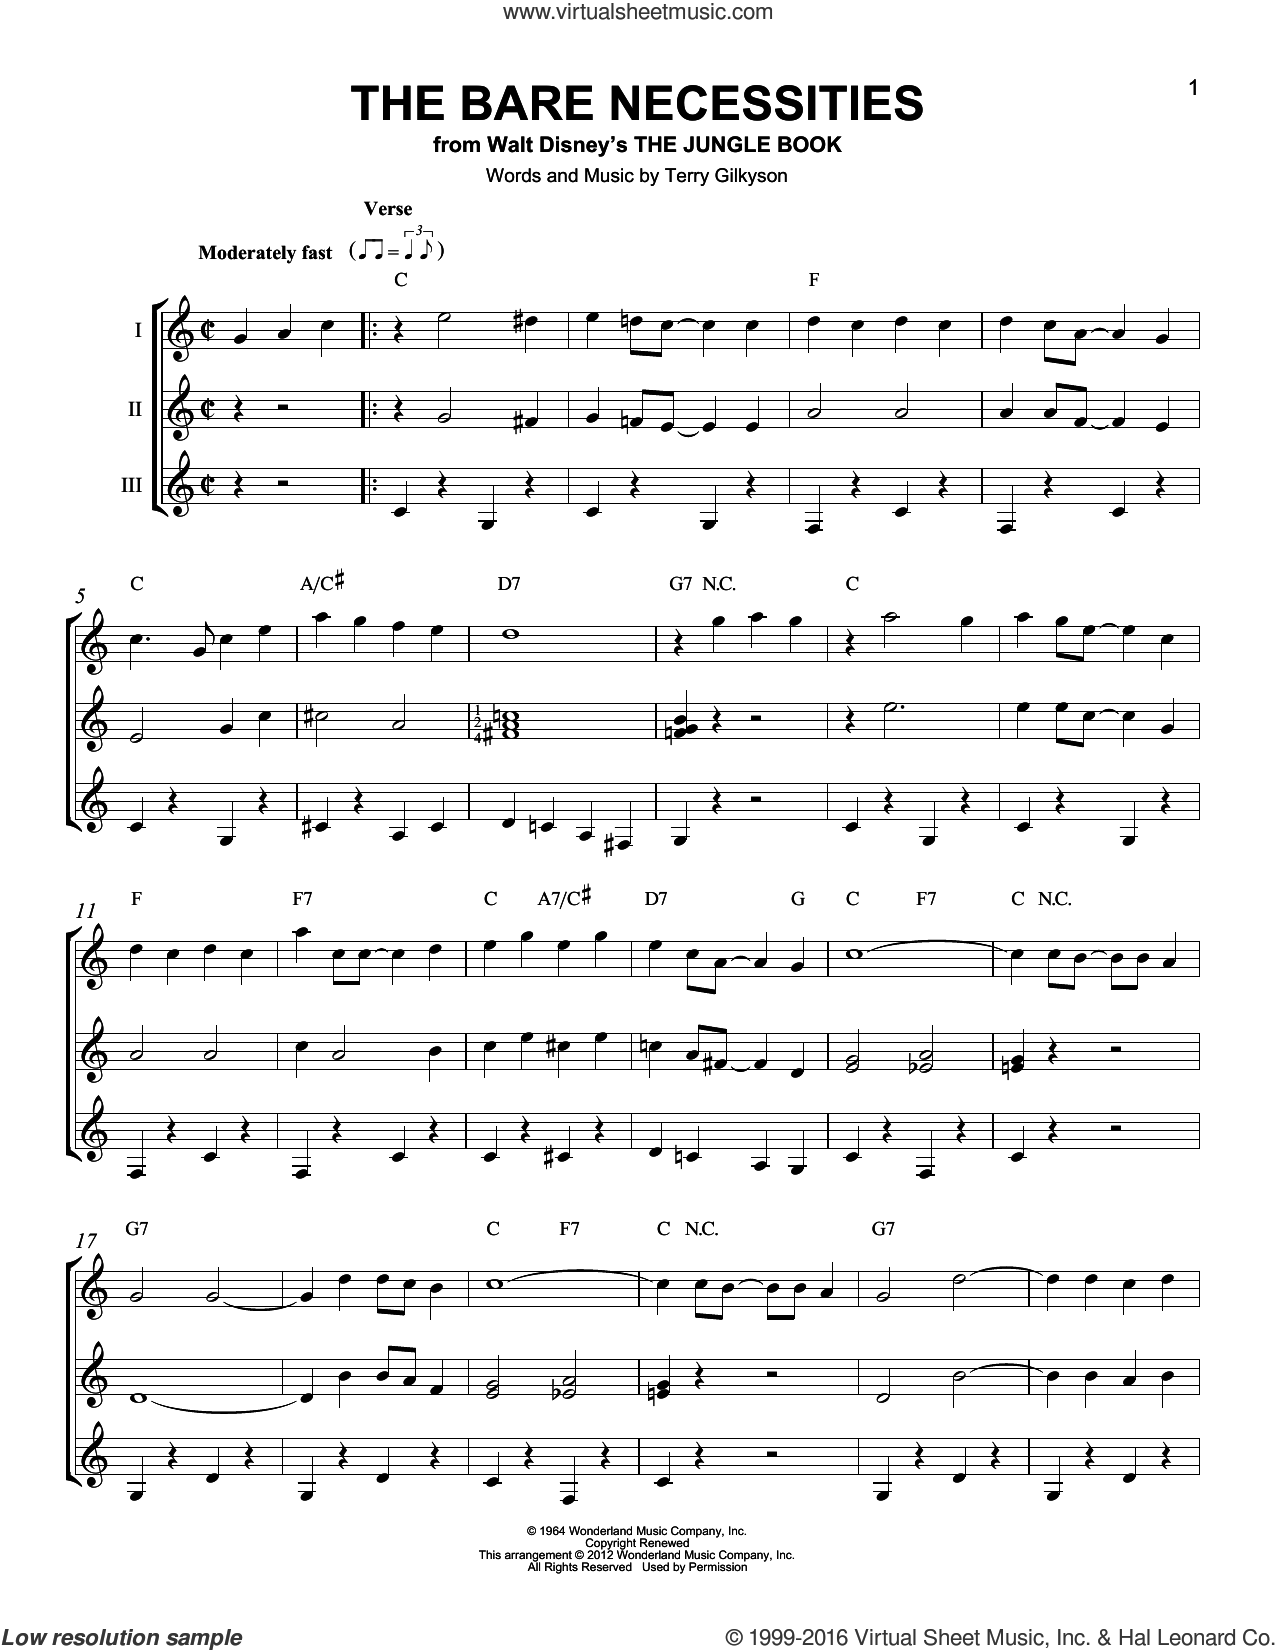 The Bare Necessities (from The Jungle Book) sheet music for guitar ensemble by Terry Gilkyson, intermediate skill level